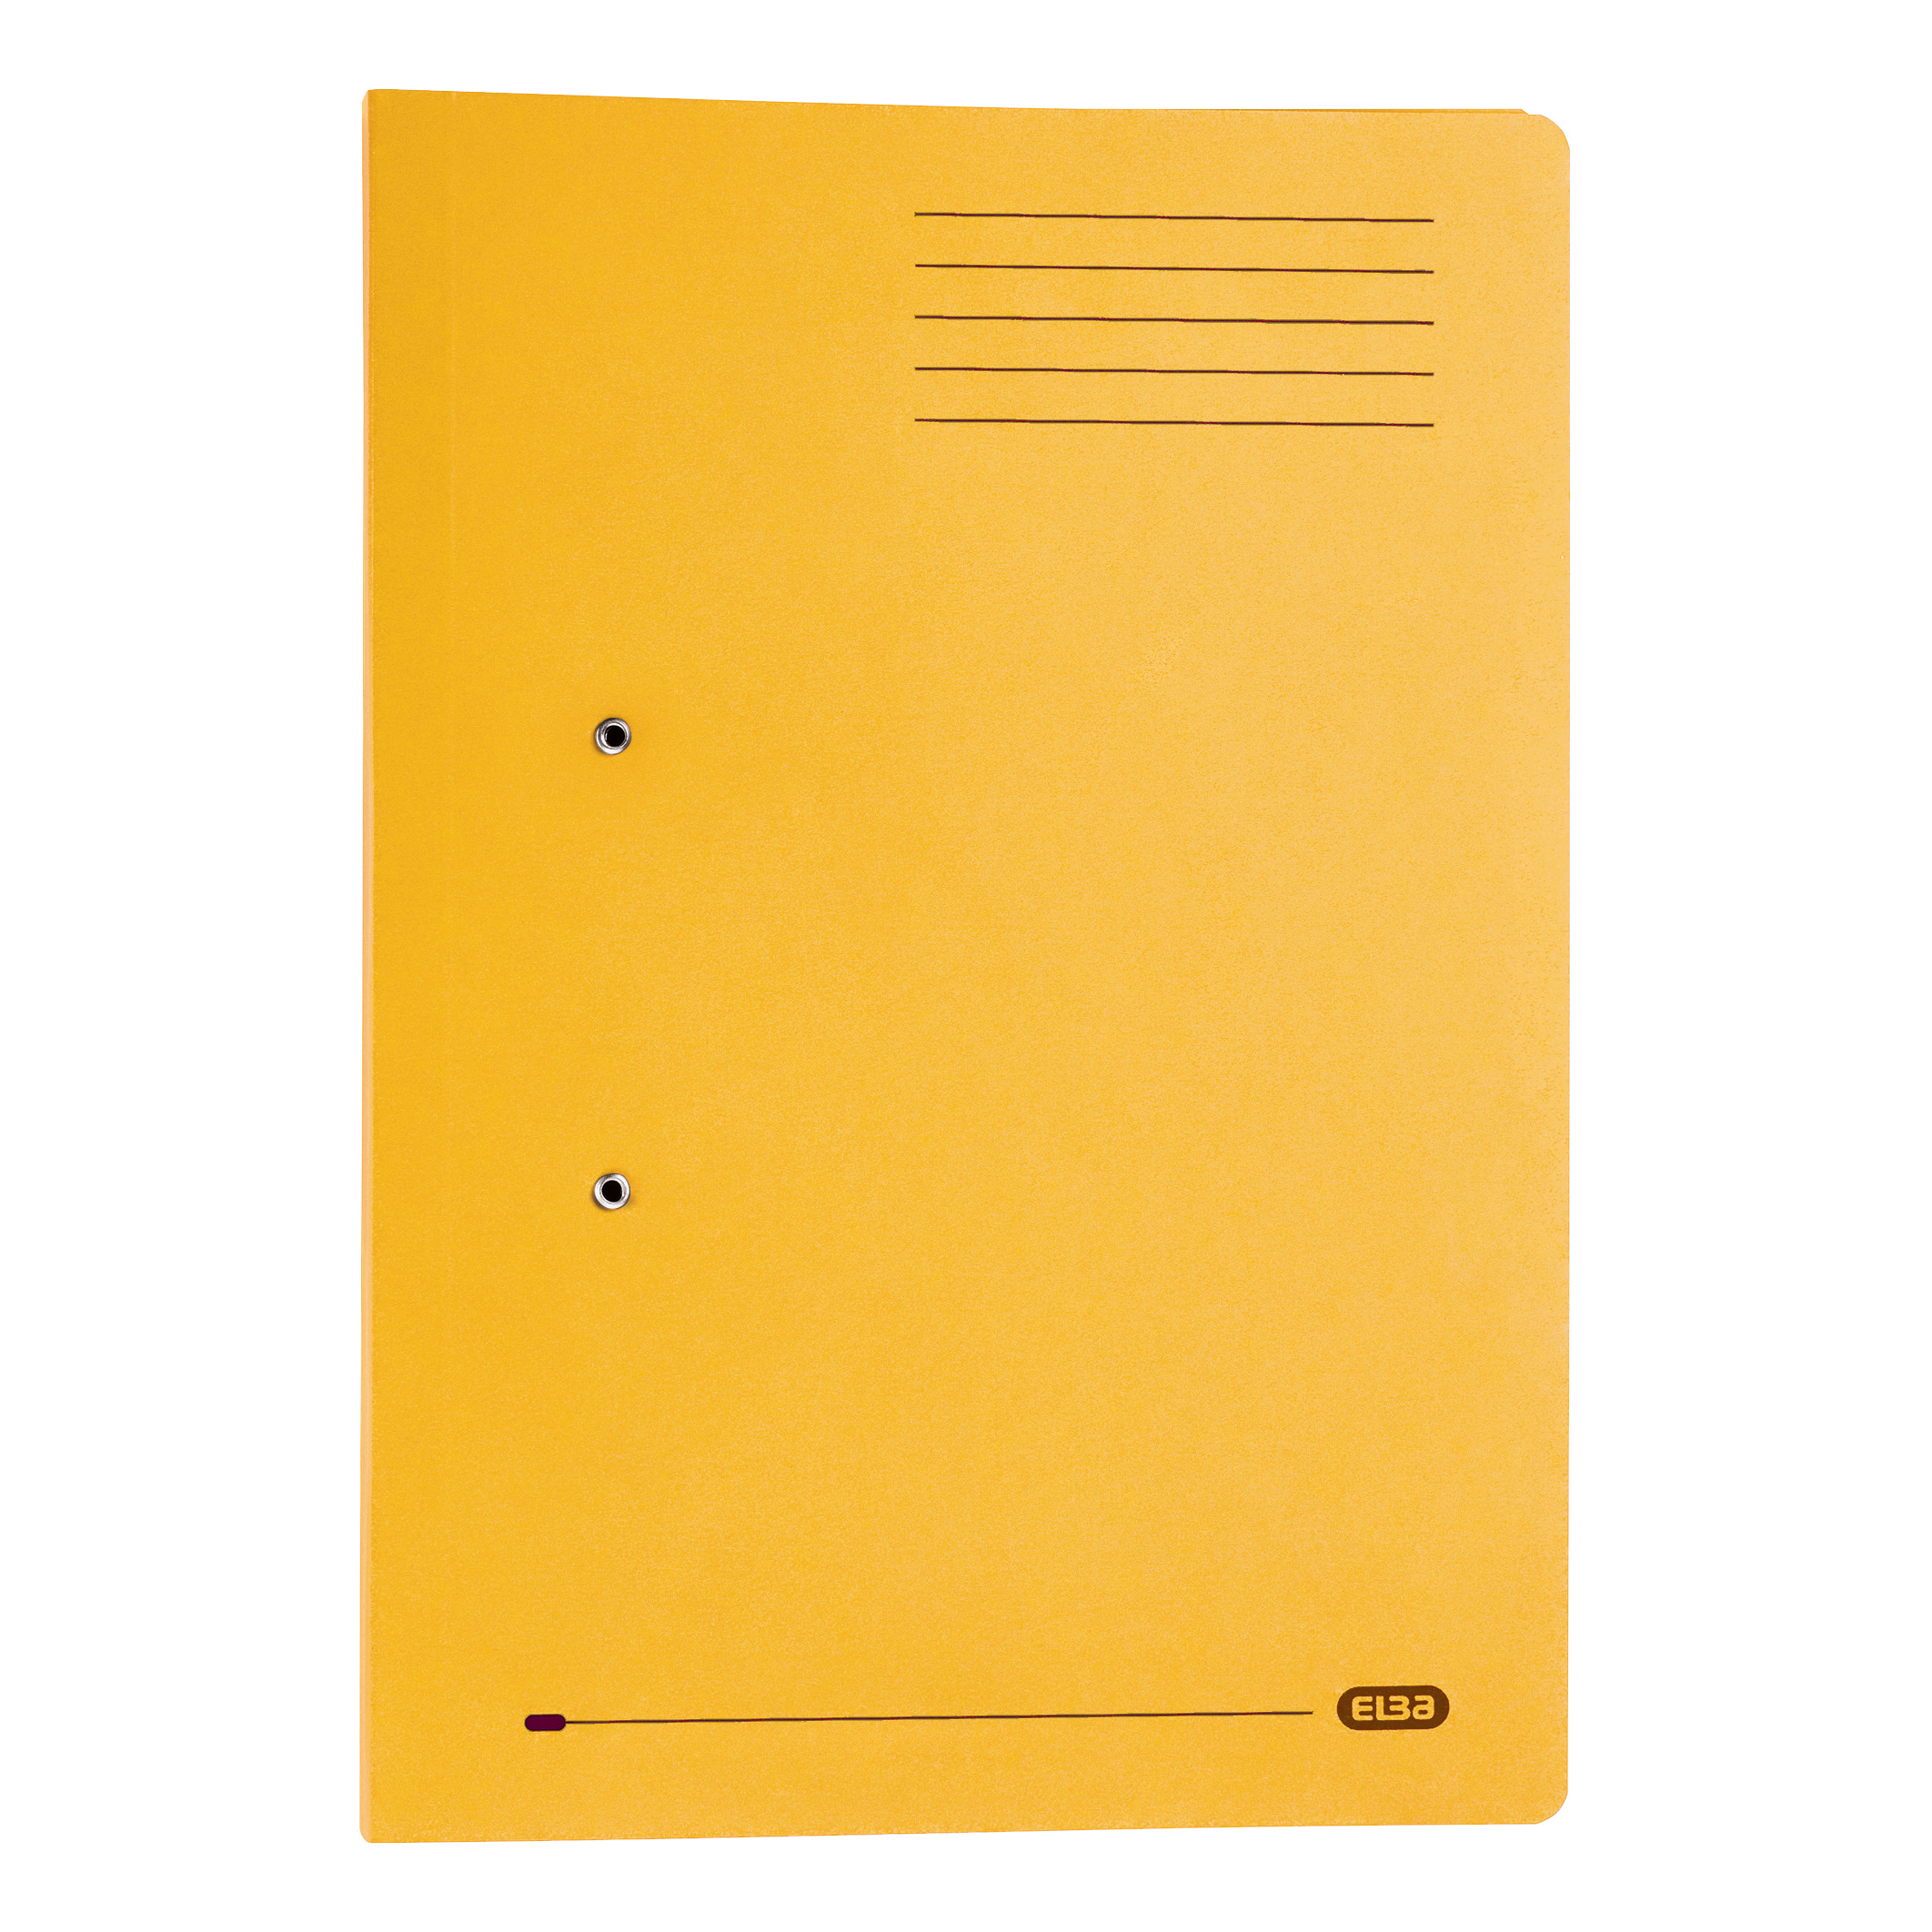 Elba Strongline Transfer Spring File Recycled Pocket 320gsm 36mm Foolscap Yellow Ref 100090150 Pack 25